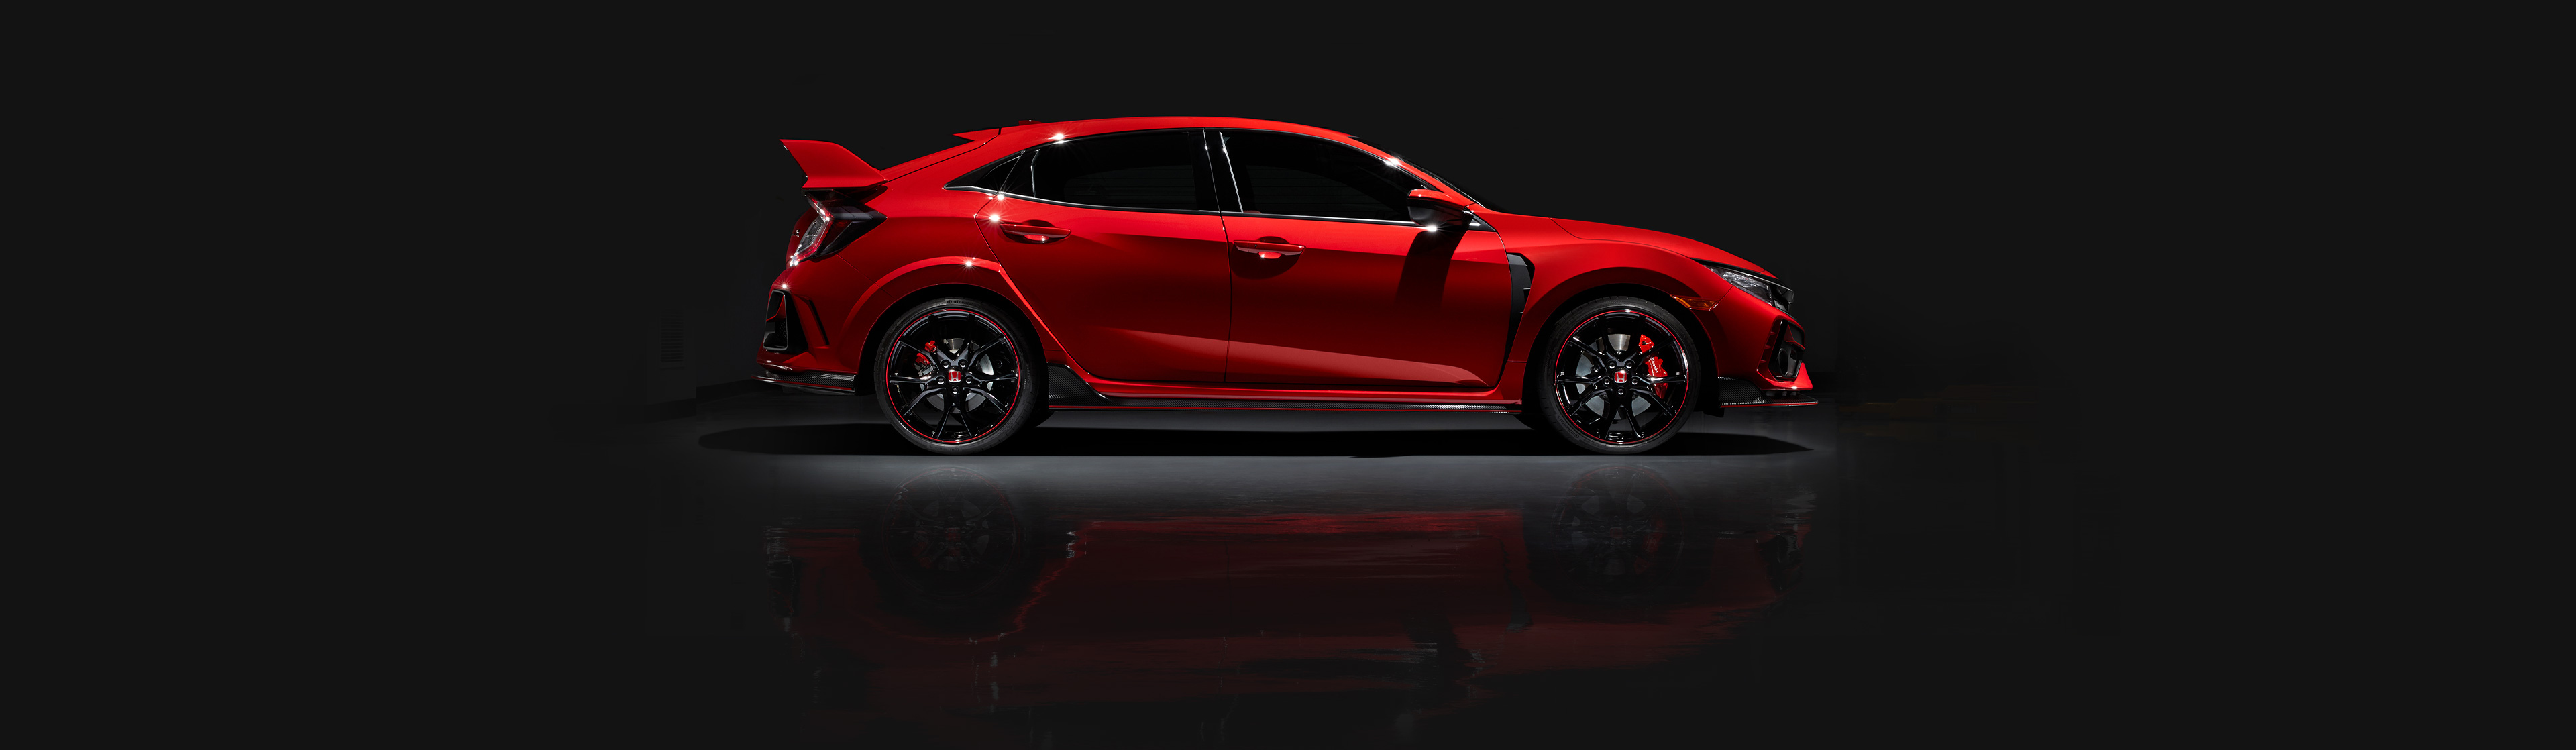 Passenger-side profile view of the 2020 Honda Civic Type R Touring in Rallye Red, parked in a garage.